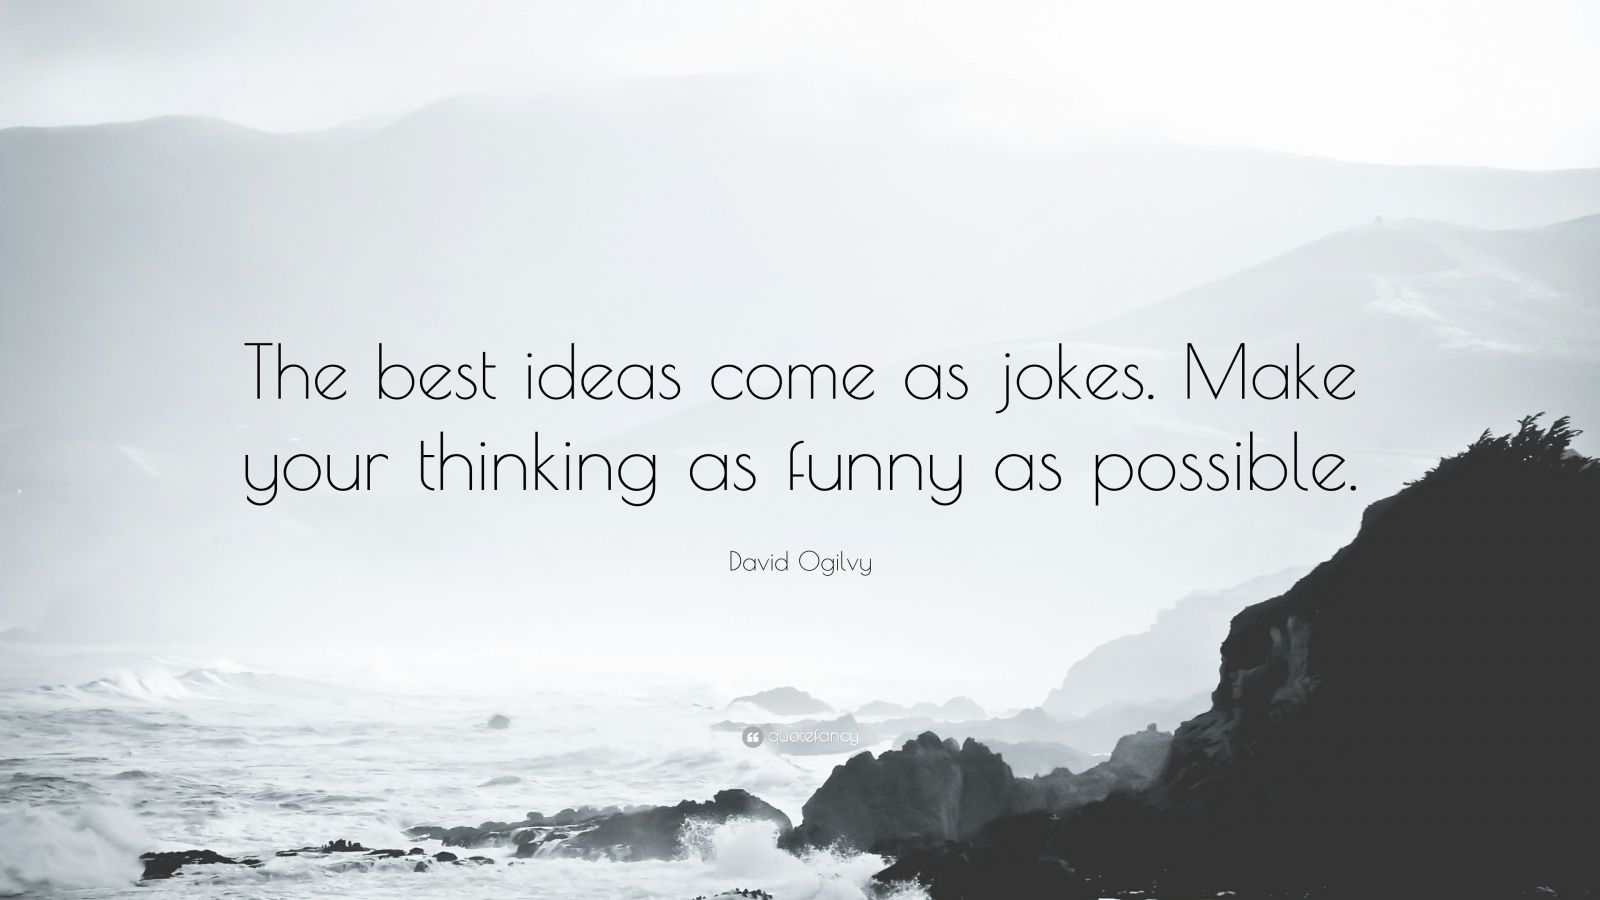 David Ogilvy Quotes Amazing David Ogilvy Quotes 100 Wallpapers  Quotefancy